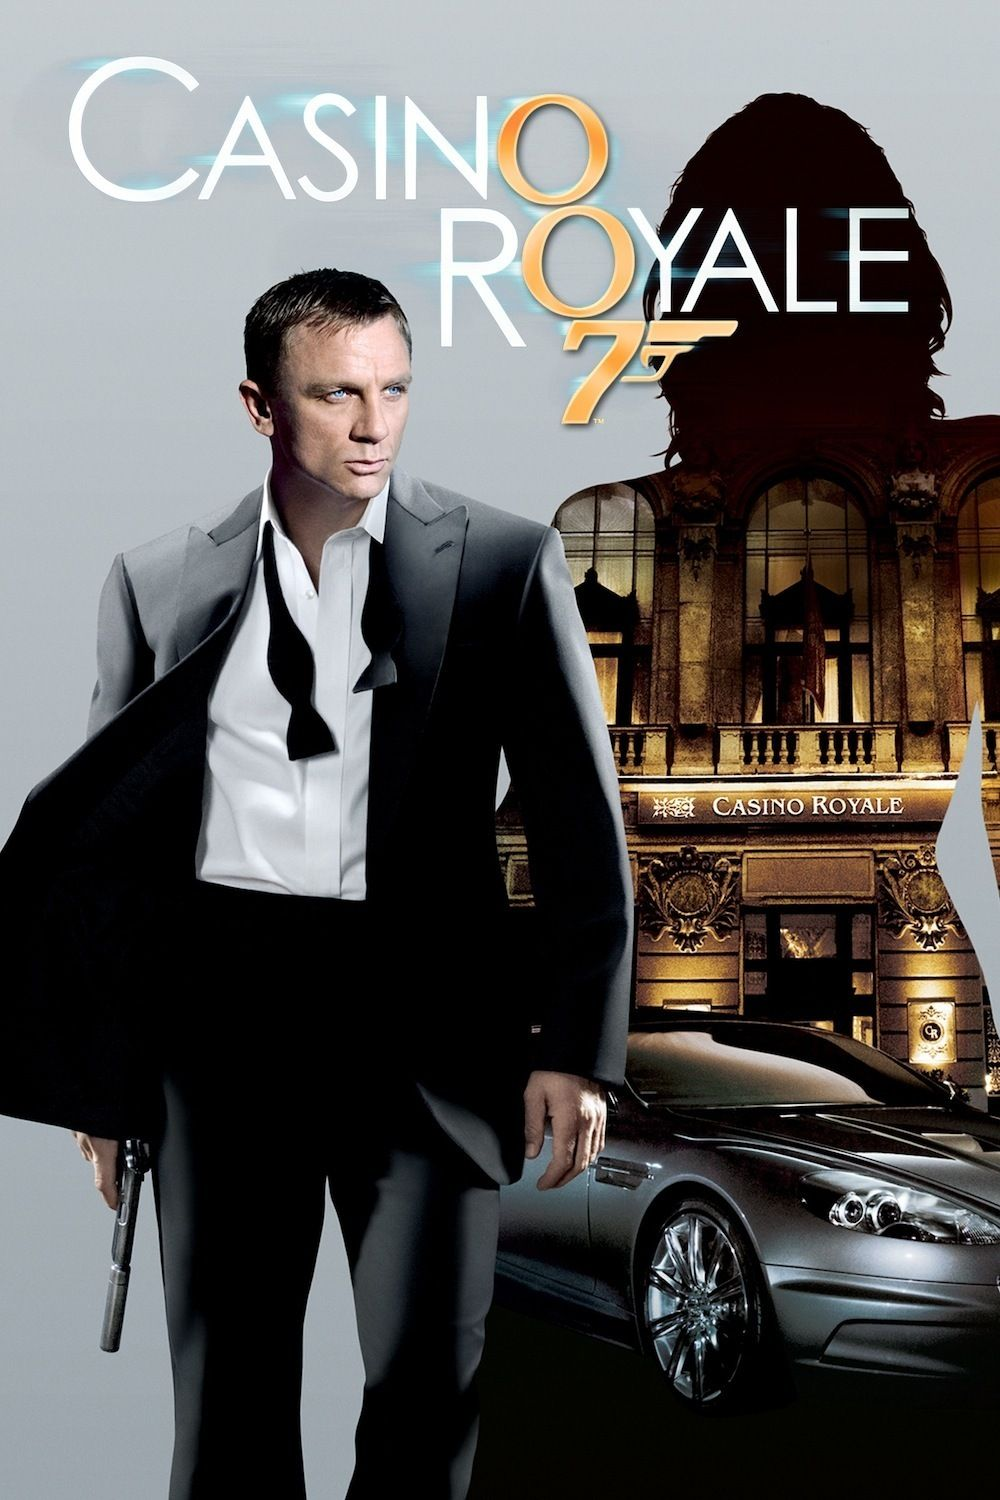 James bond casino royale streaming tips for playing roulette in vegas